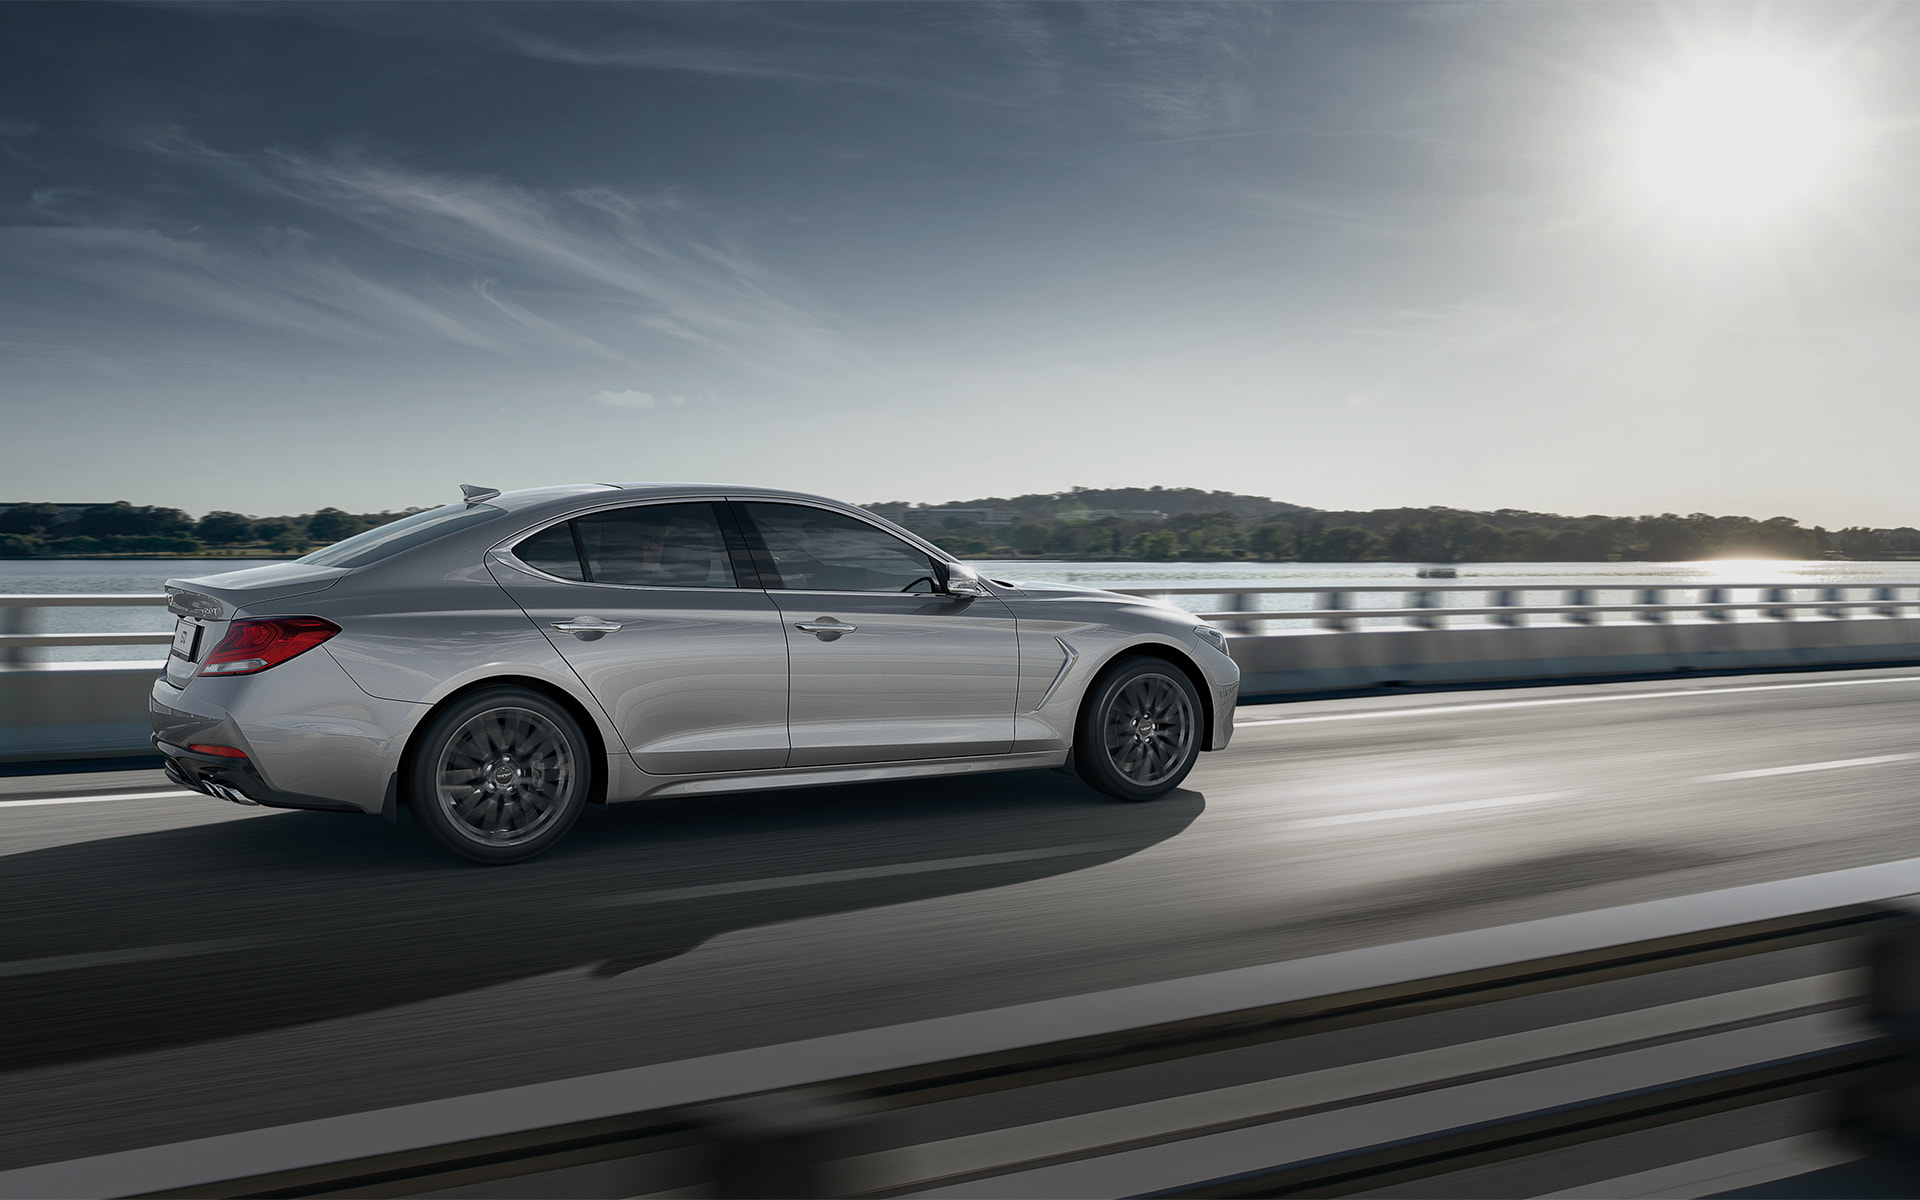 GENESIS G70 Safety Features - 고속도로 주행 보조